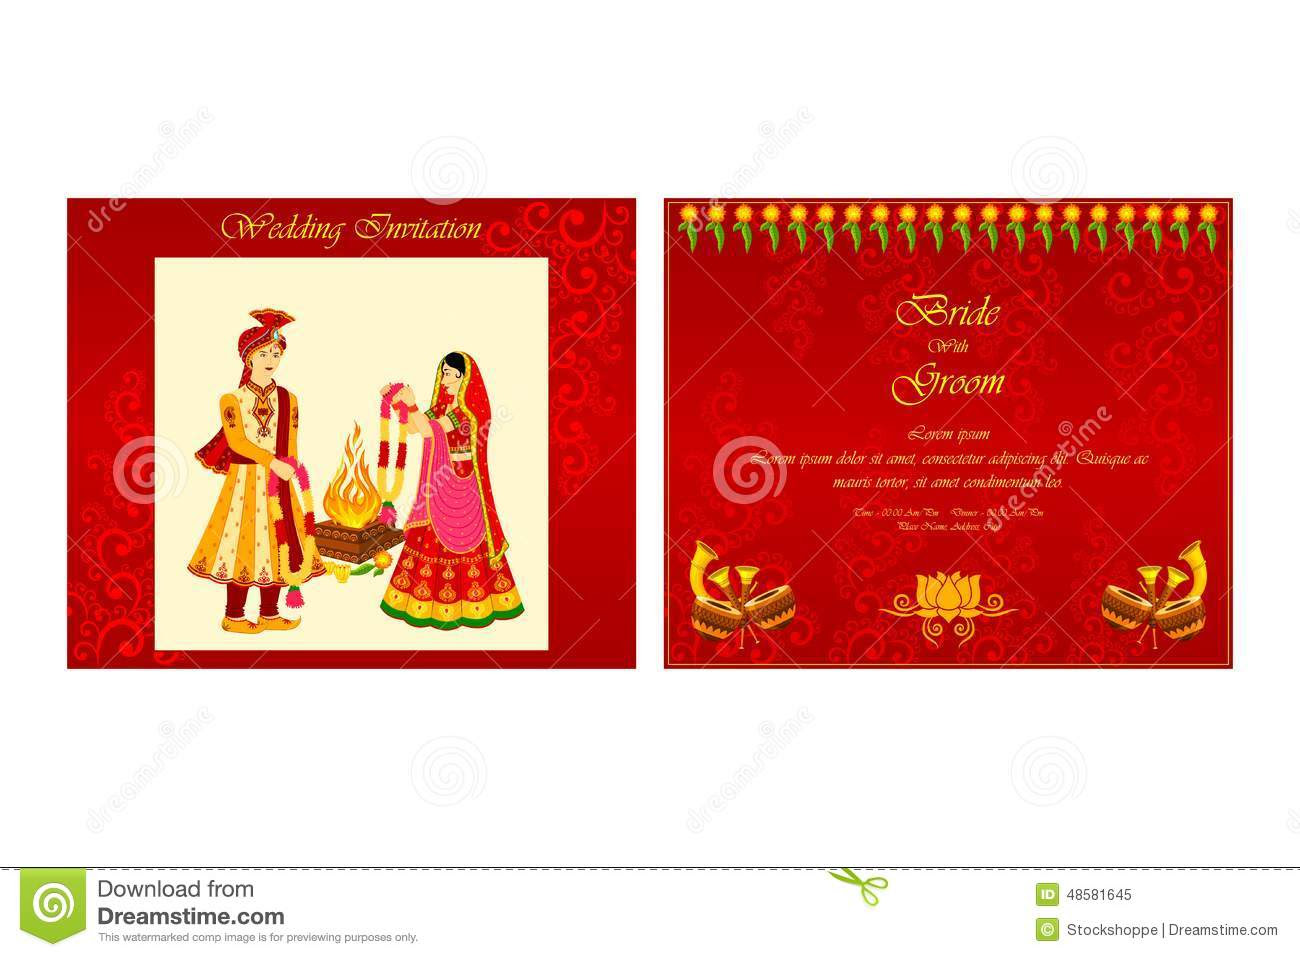 Different wedding Invitations Blog: Indian wedding invitations ...